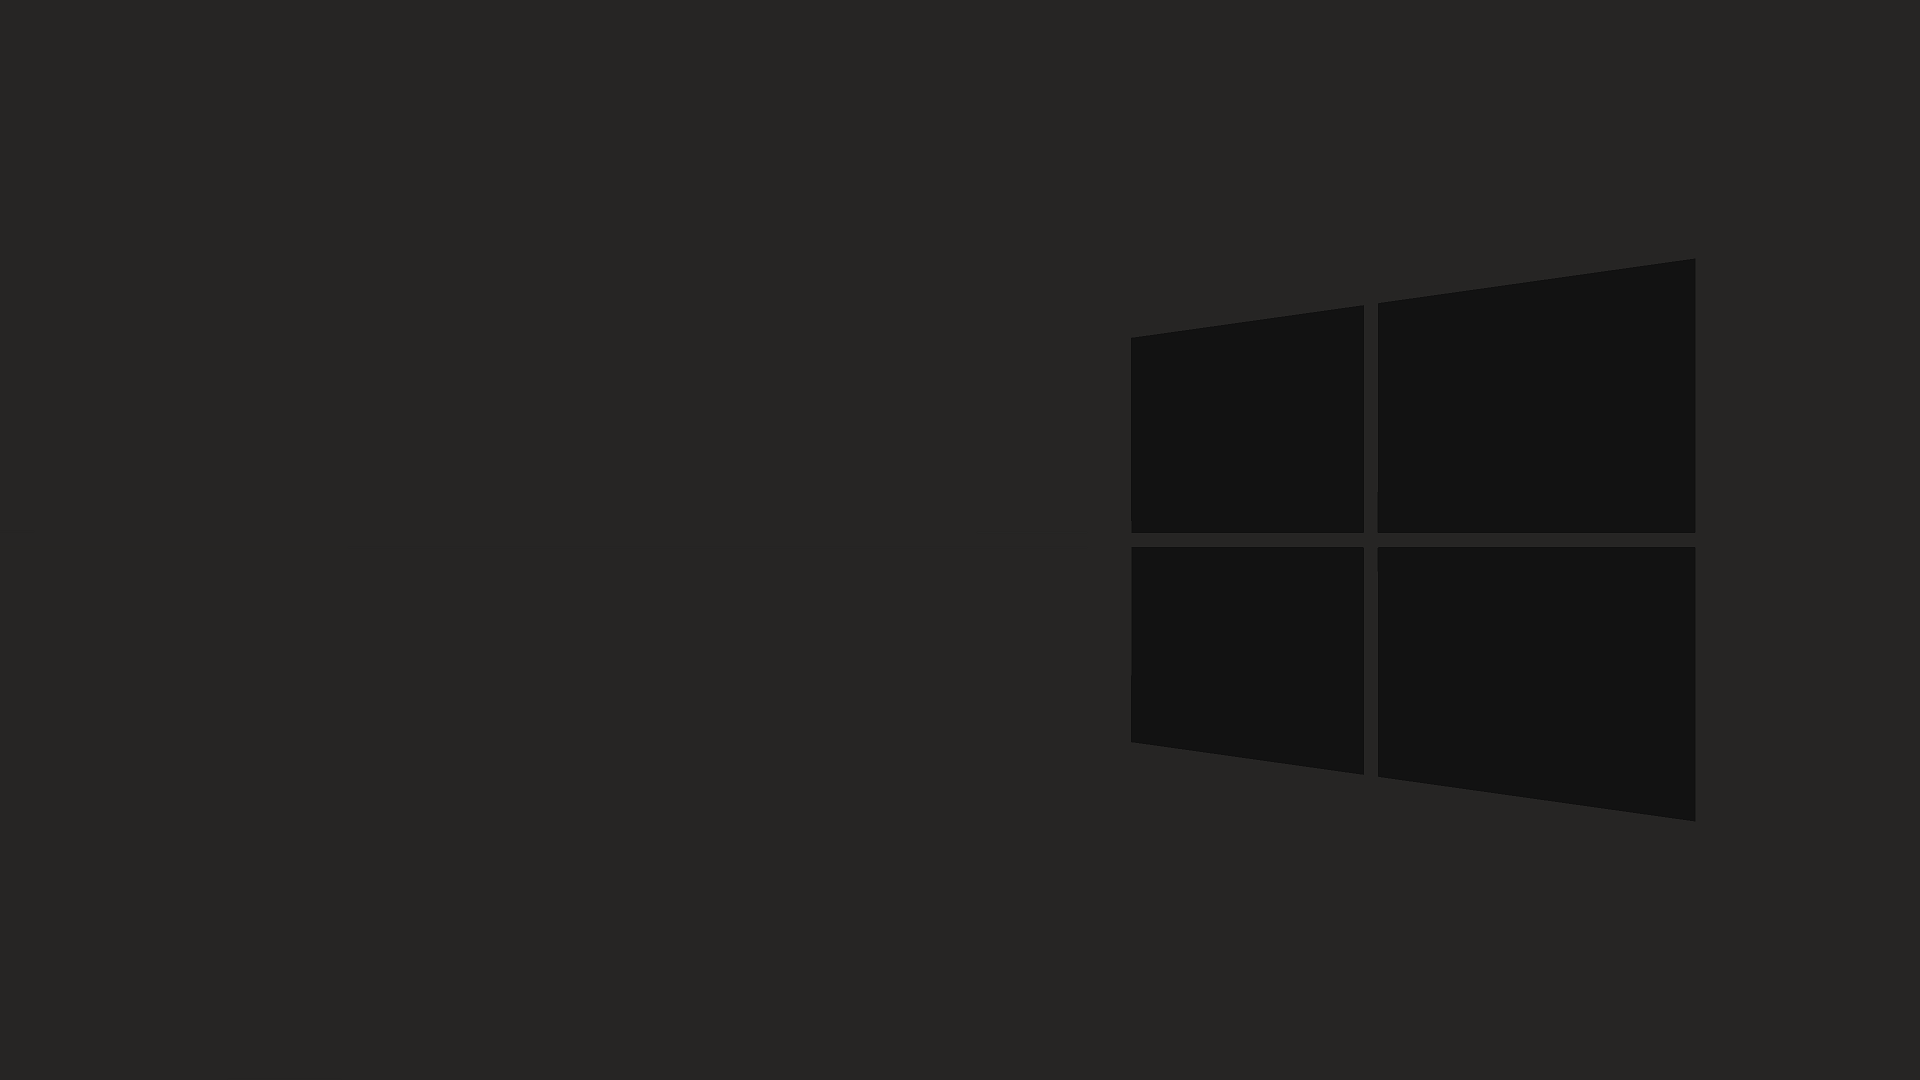 Black Desktop Background In Windows 10